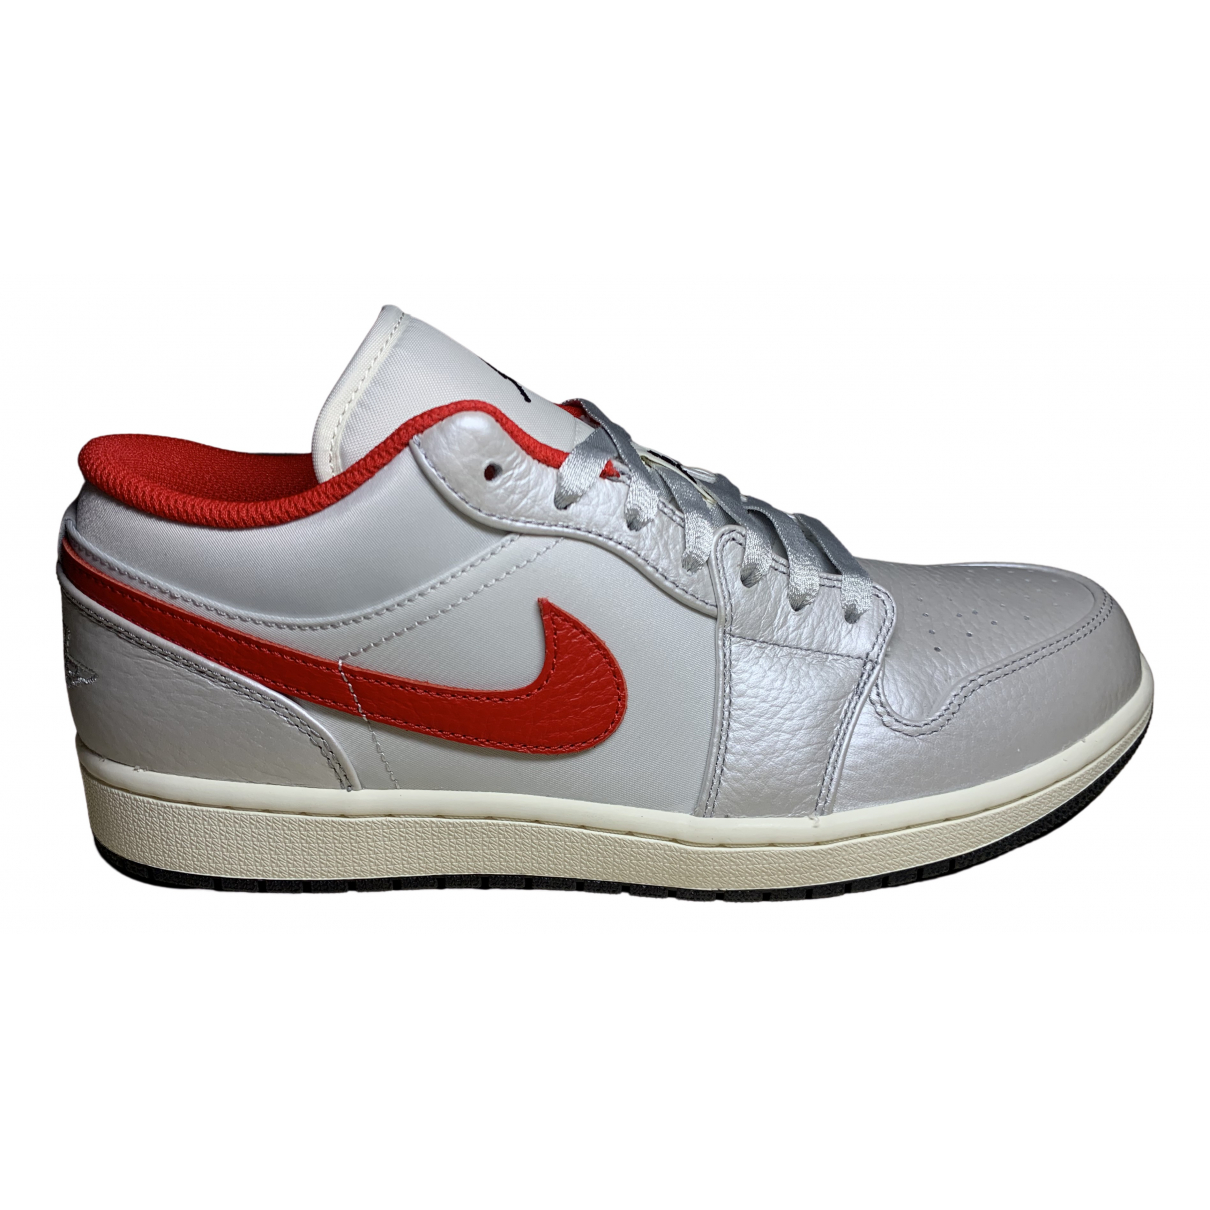 Jordan Air Jordan 1  Metallic Leather Trainers for Men 44 EU